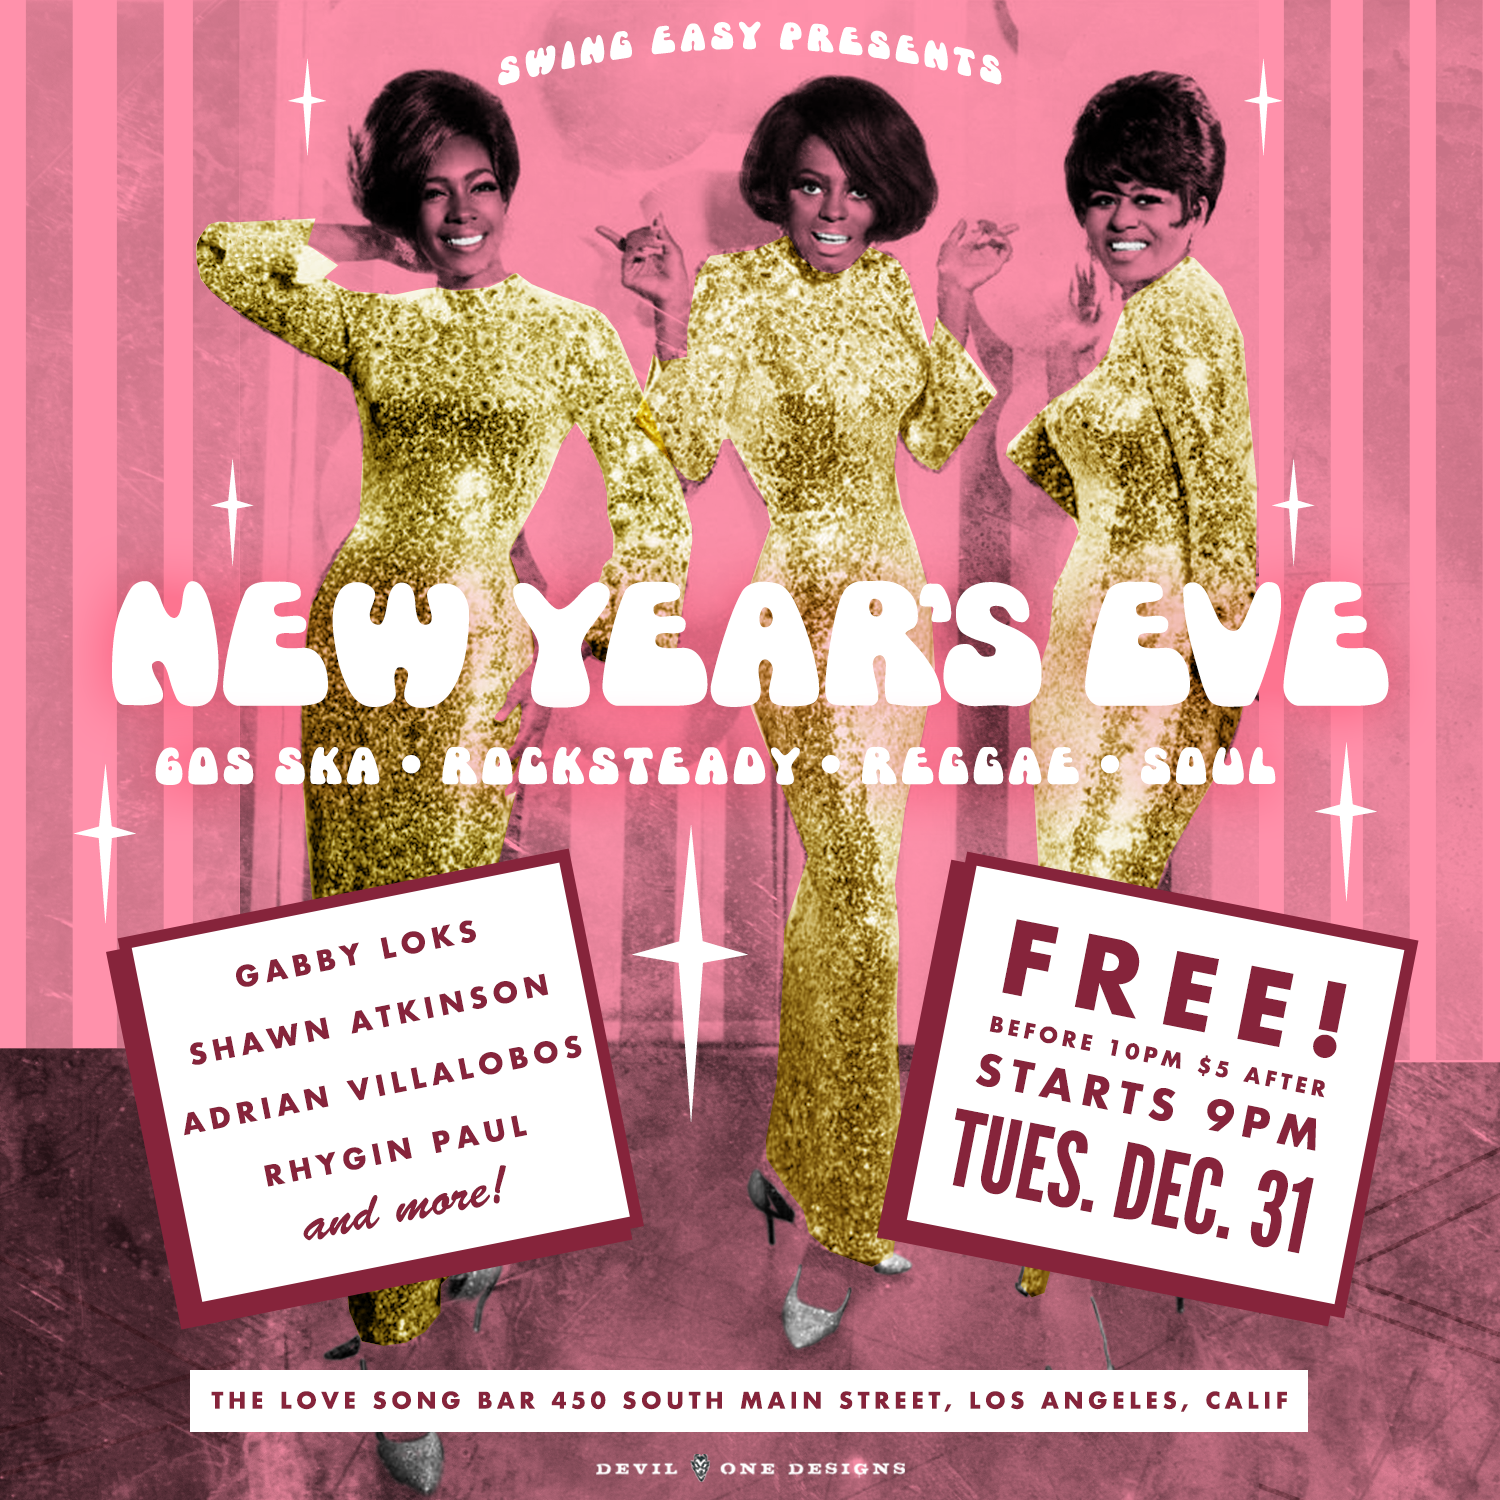 Swing Easy New Years Party!